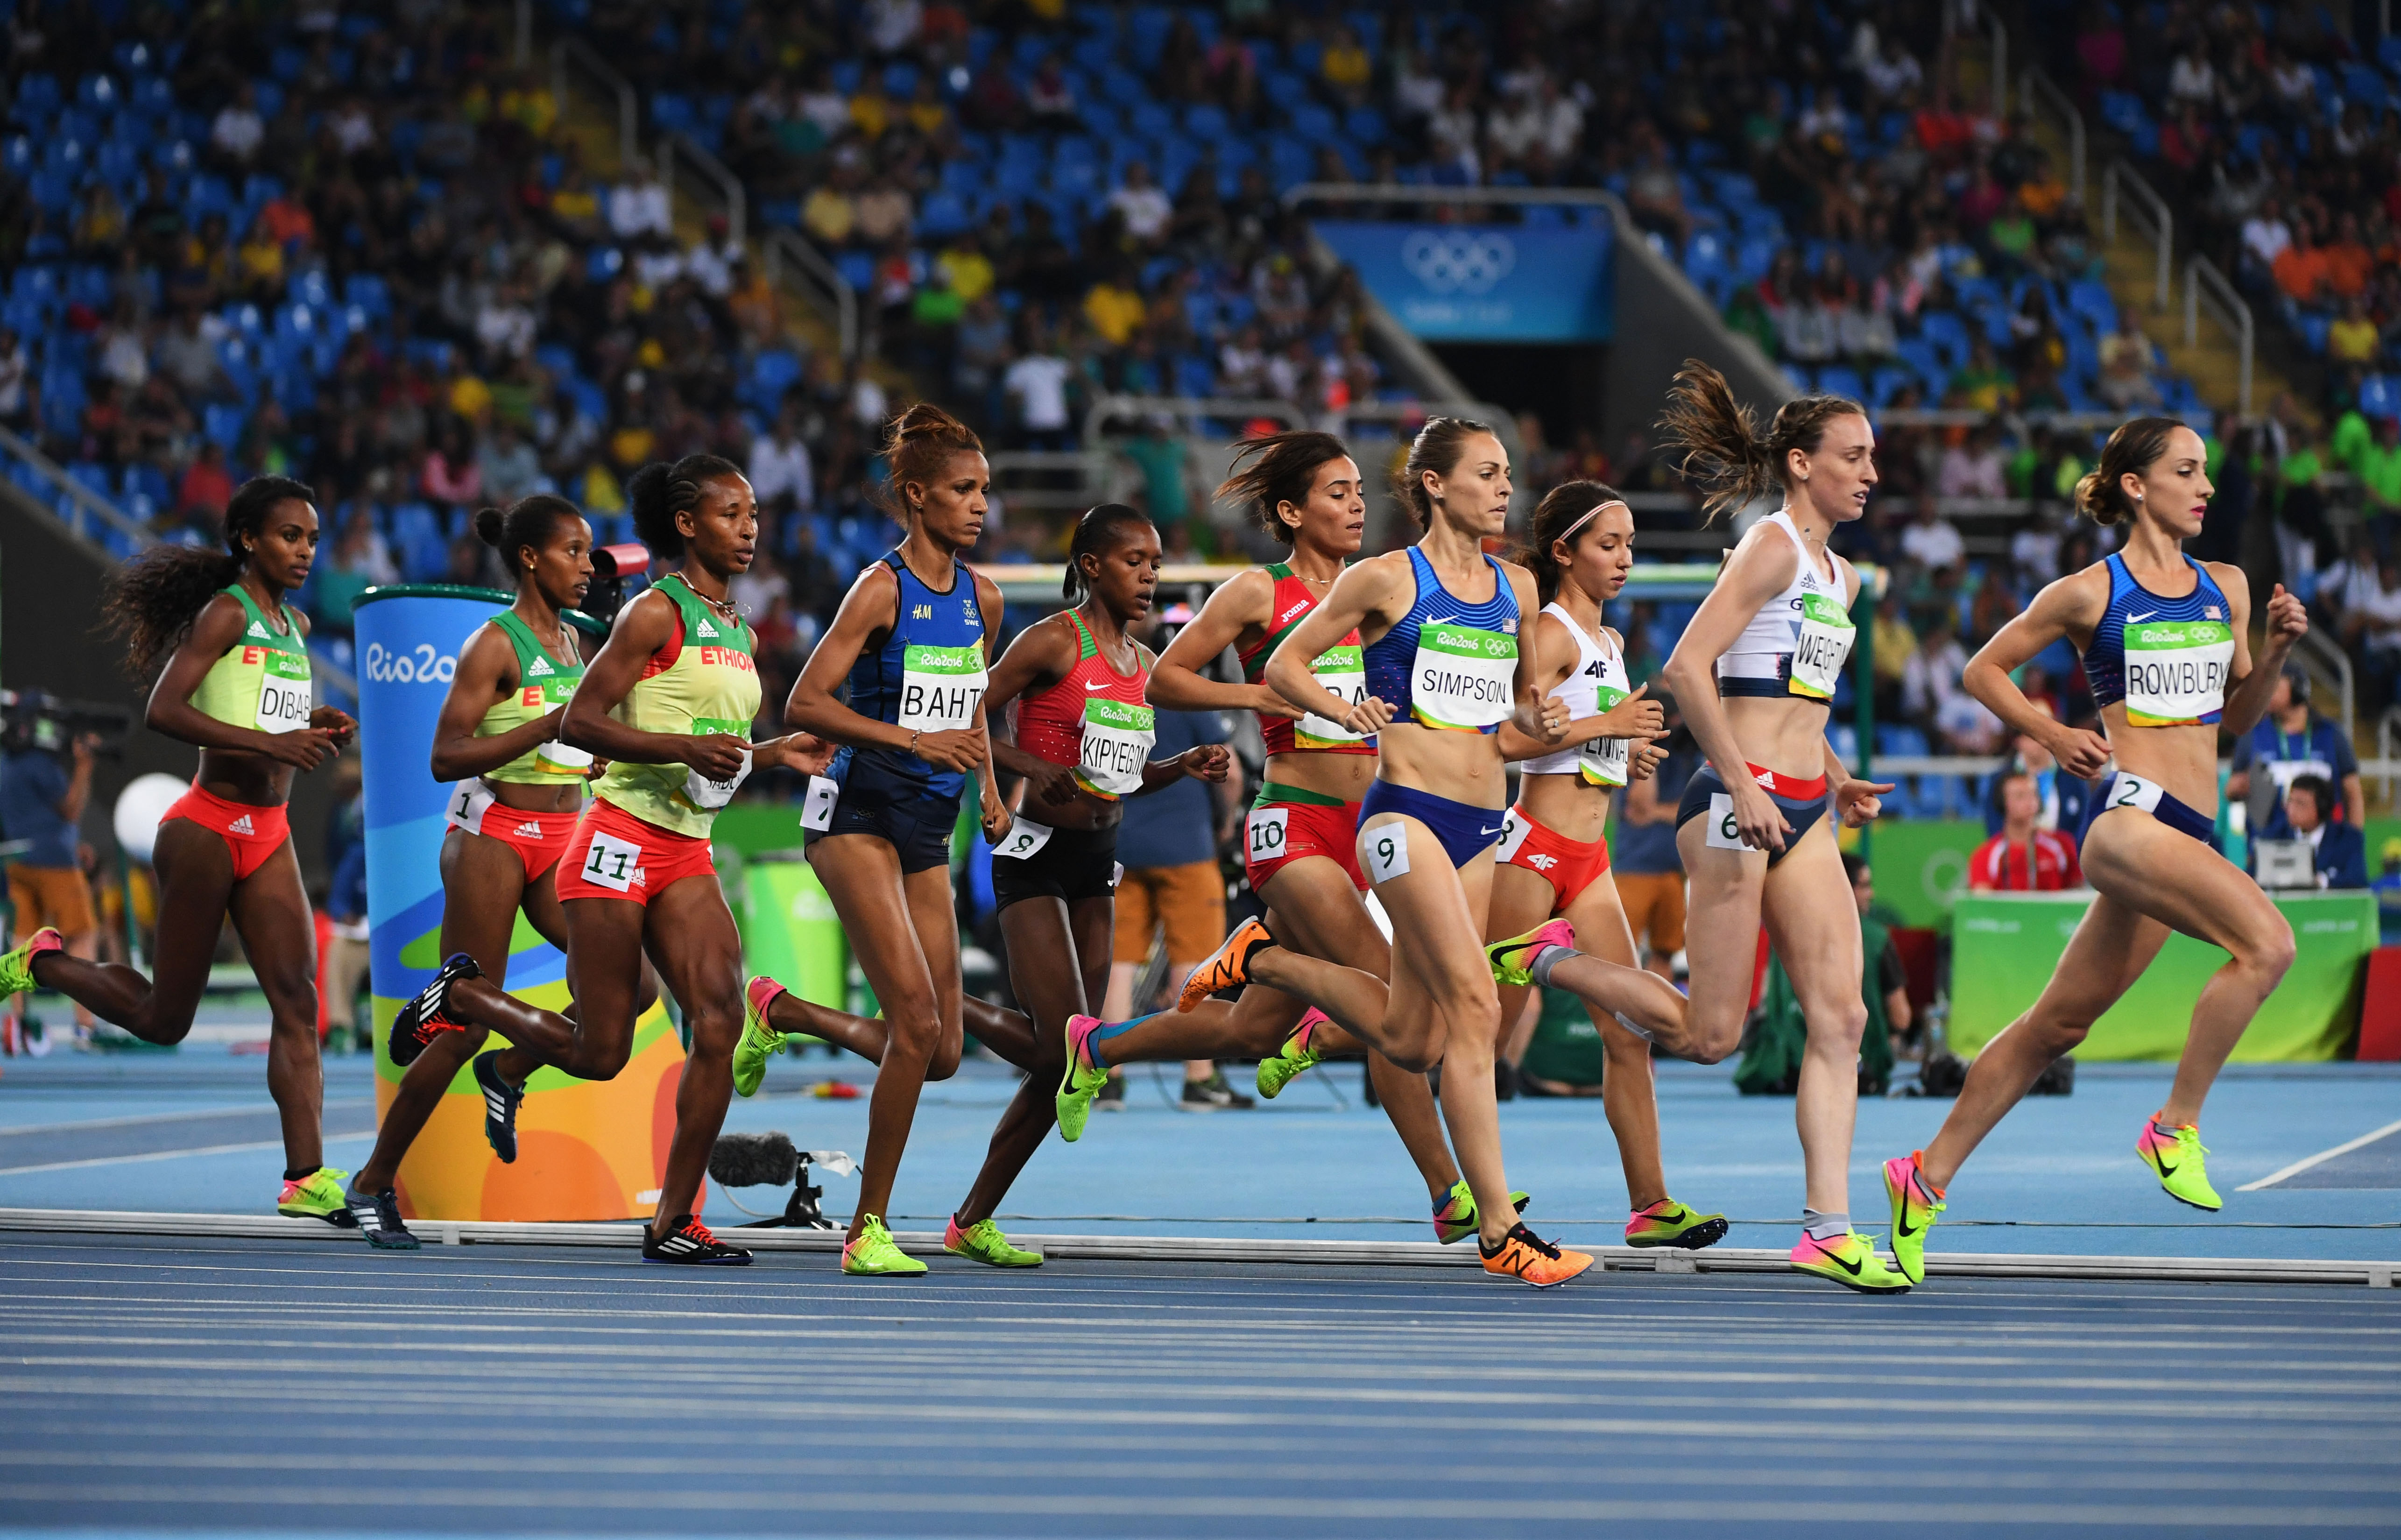 A view of competitors during the Women's 1500m Final on Day 11 of the Rio 2016 Olympic Games at the Olympic Stadium on August 16, 2016 in Rio de Janeiro, Brazil.  (Photo by Quinn Rooney/Getty Images)